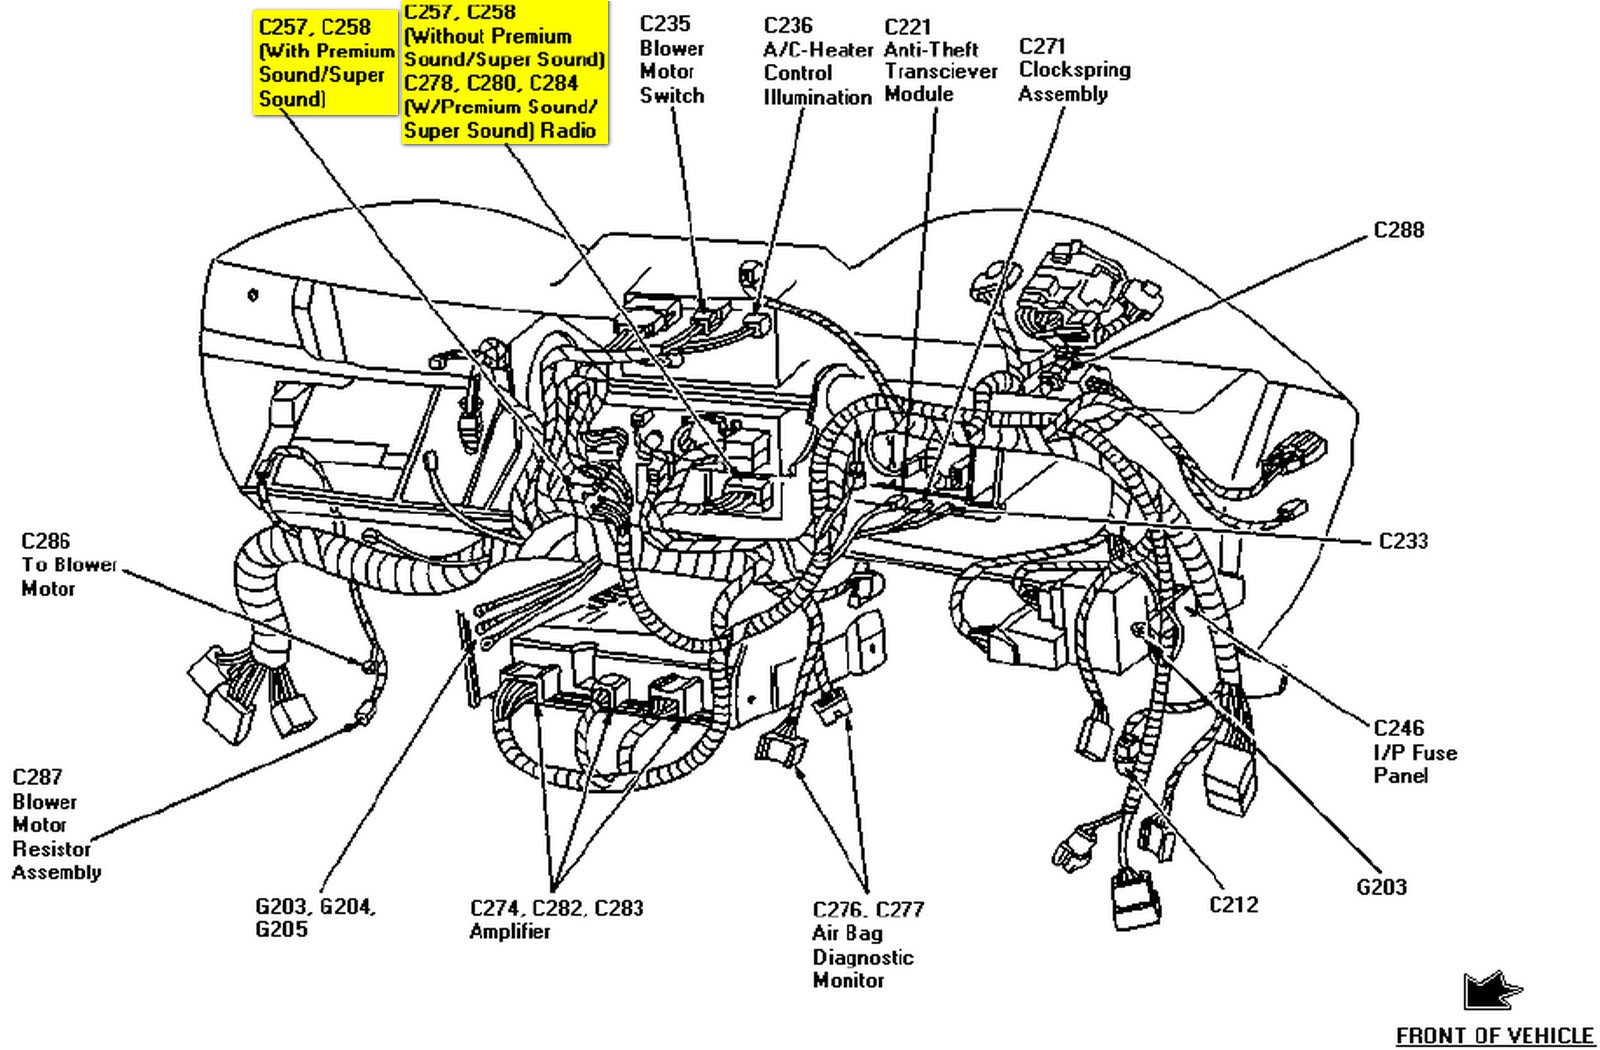 1997 Ford Mustang Radio Wiring Diagram from static-resources.imageservice.cloud